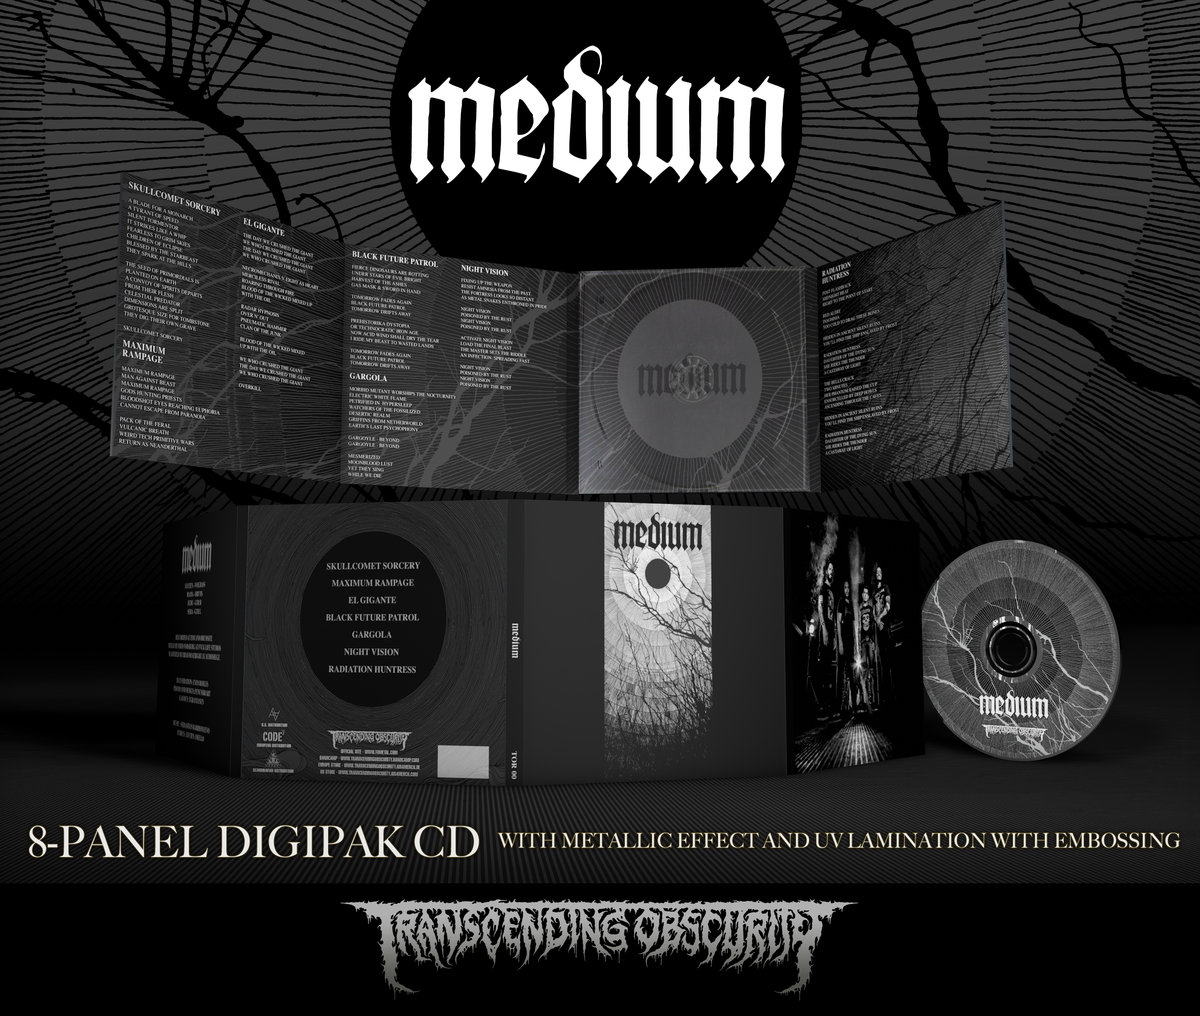 MEDIUM (Argentina) - Self Titled 8-Panel Digipak CD with Silver Effect and UV Lamination with Embossing (Limited to 250)